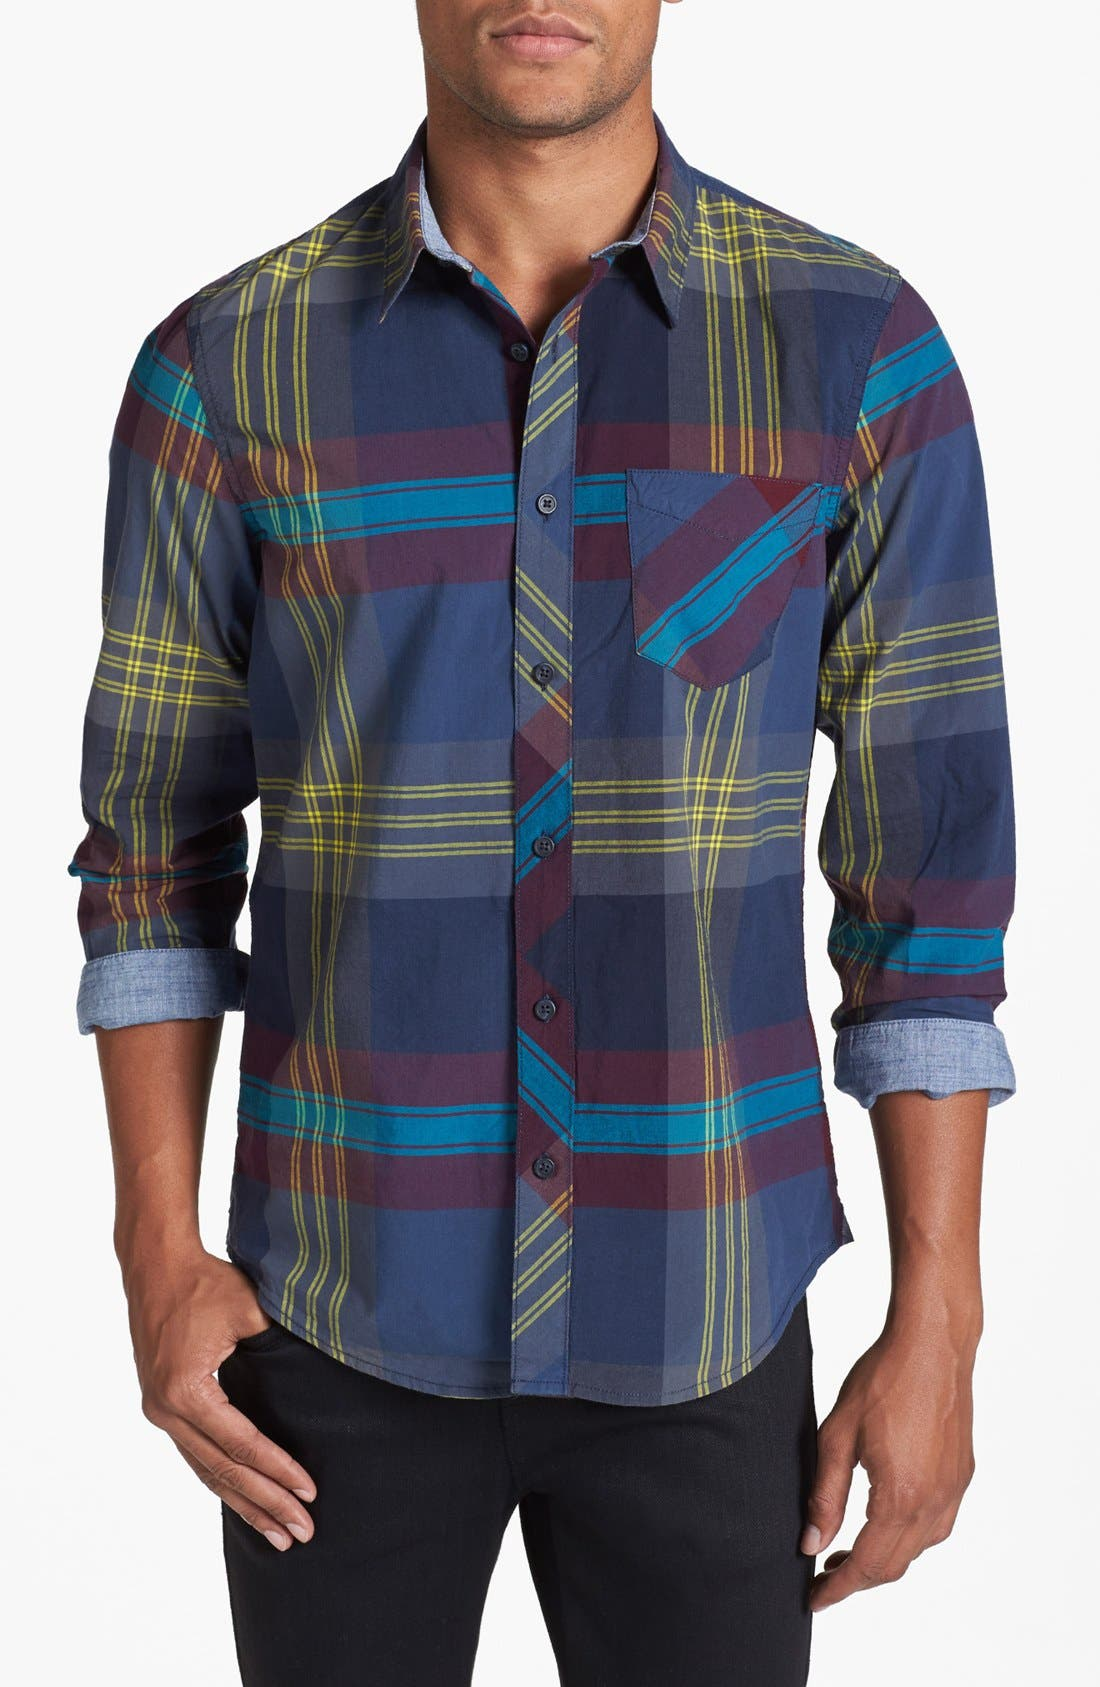 Alternate Image 1 Selected - 1901 Plaid Poplin Shirt